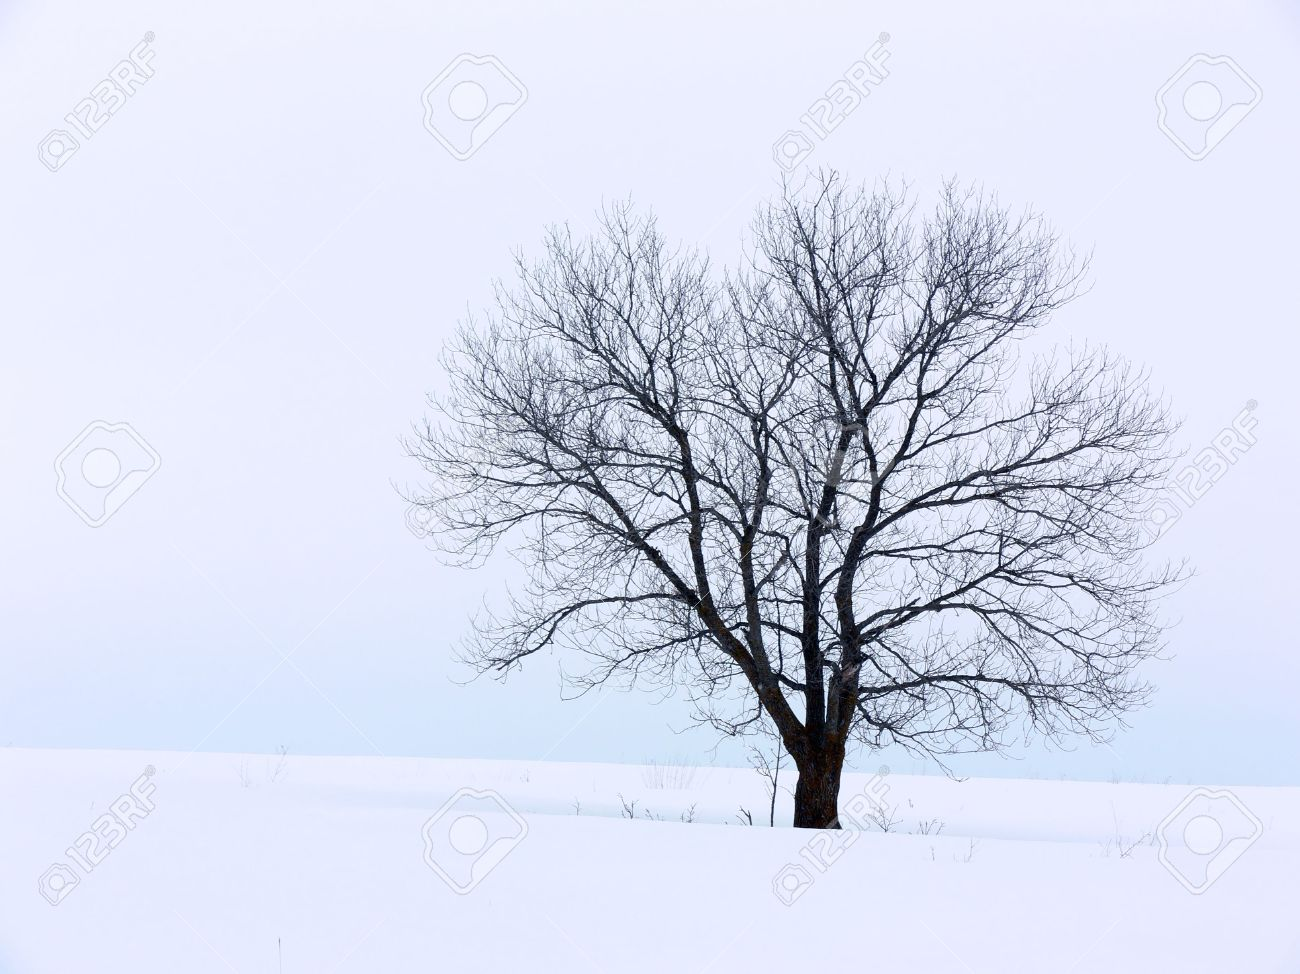 Tree on a snowy hill against a cloudy sky. Stock Photo - 417516